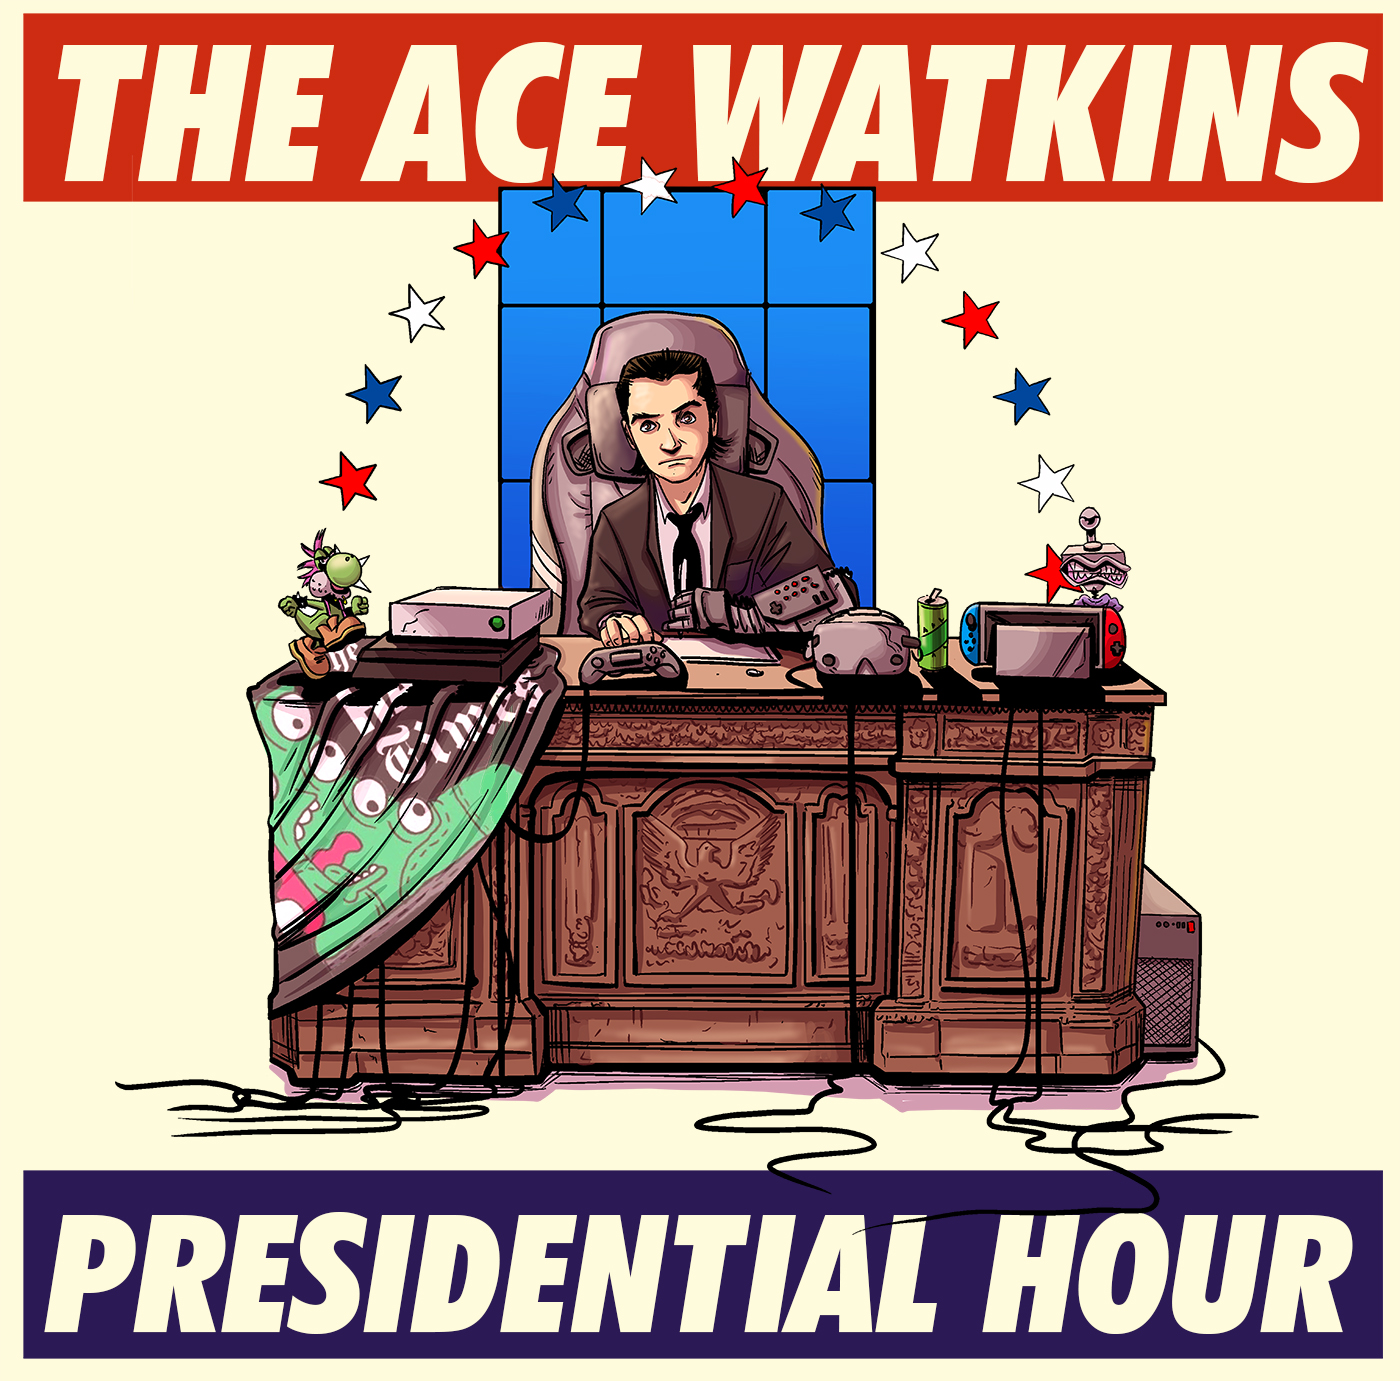 The Ace Watkins Presidential Hour show art